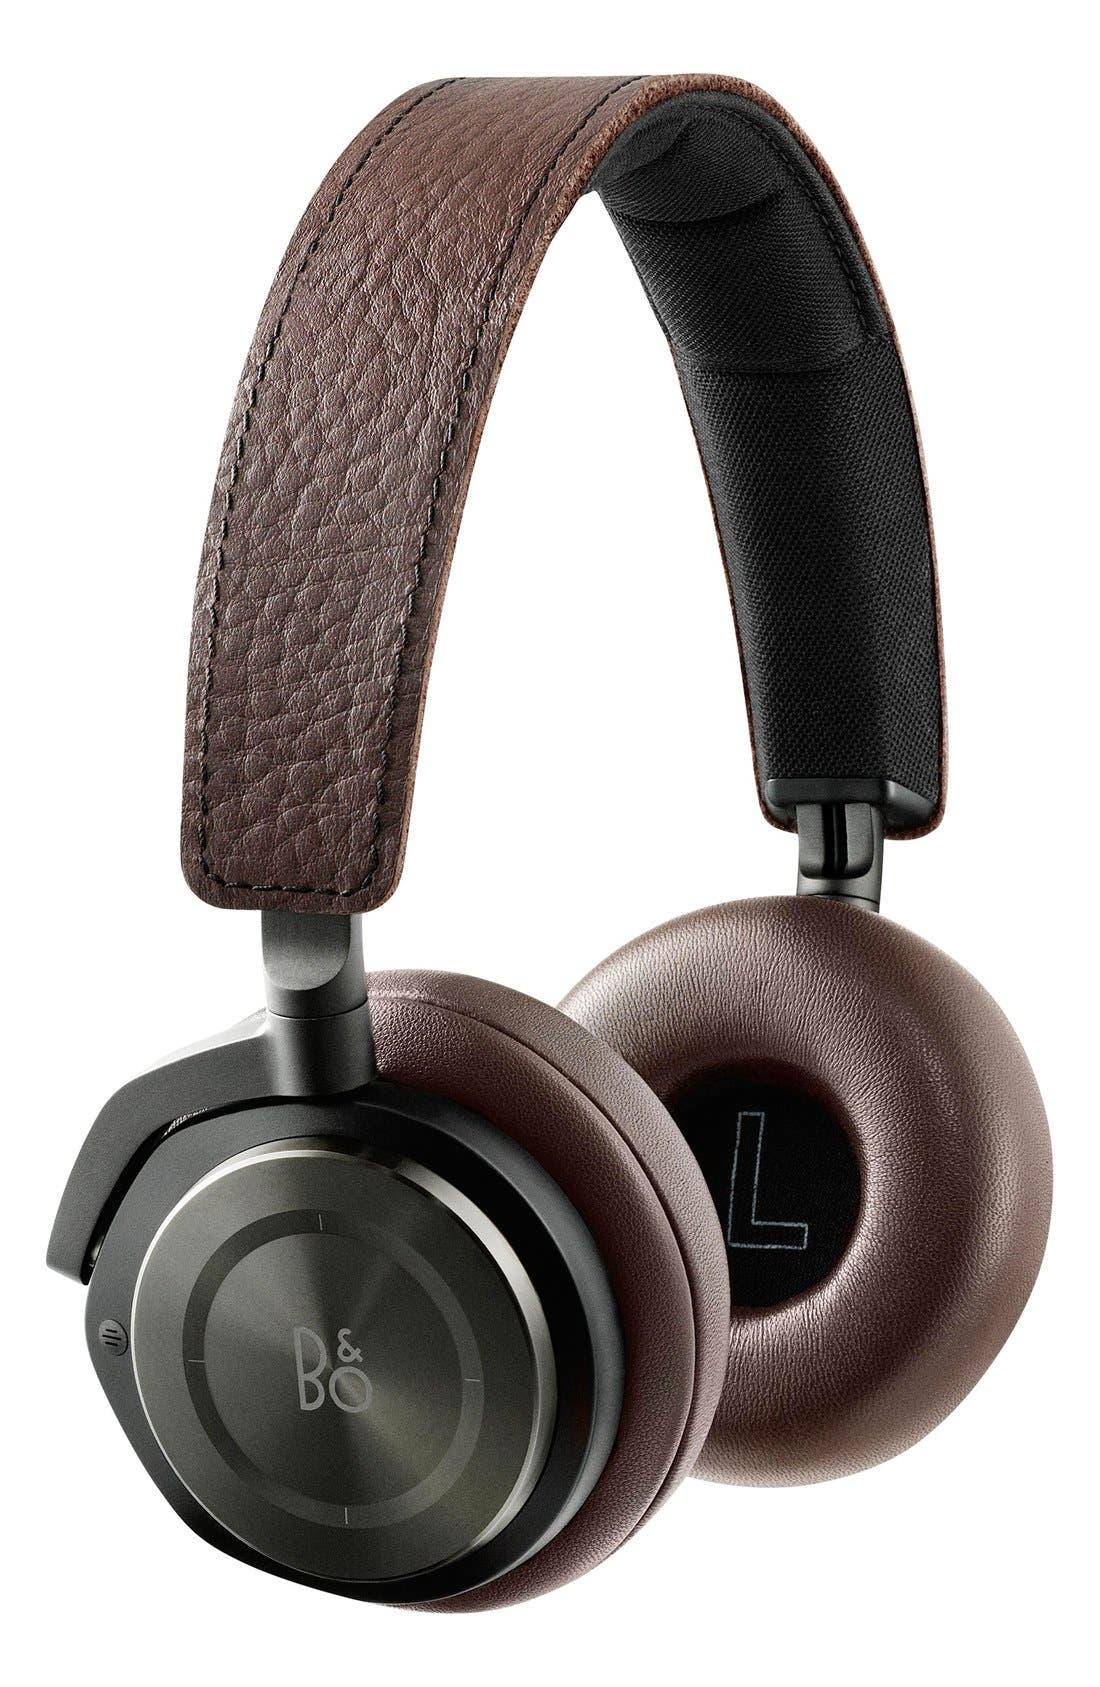 H8 ANC Over-Ear Bluetooth<sup>®</sup> Headphones,                         Main,                         color, 206